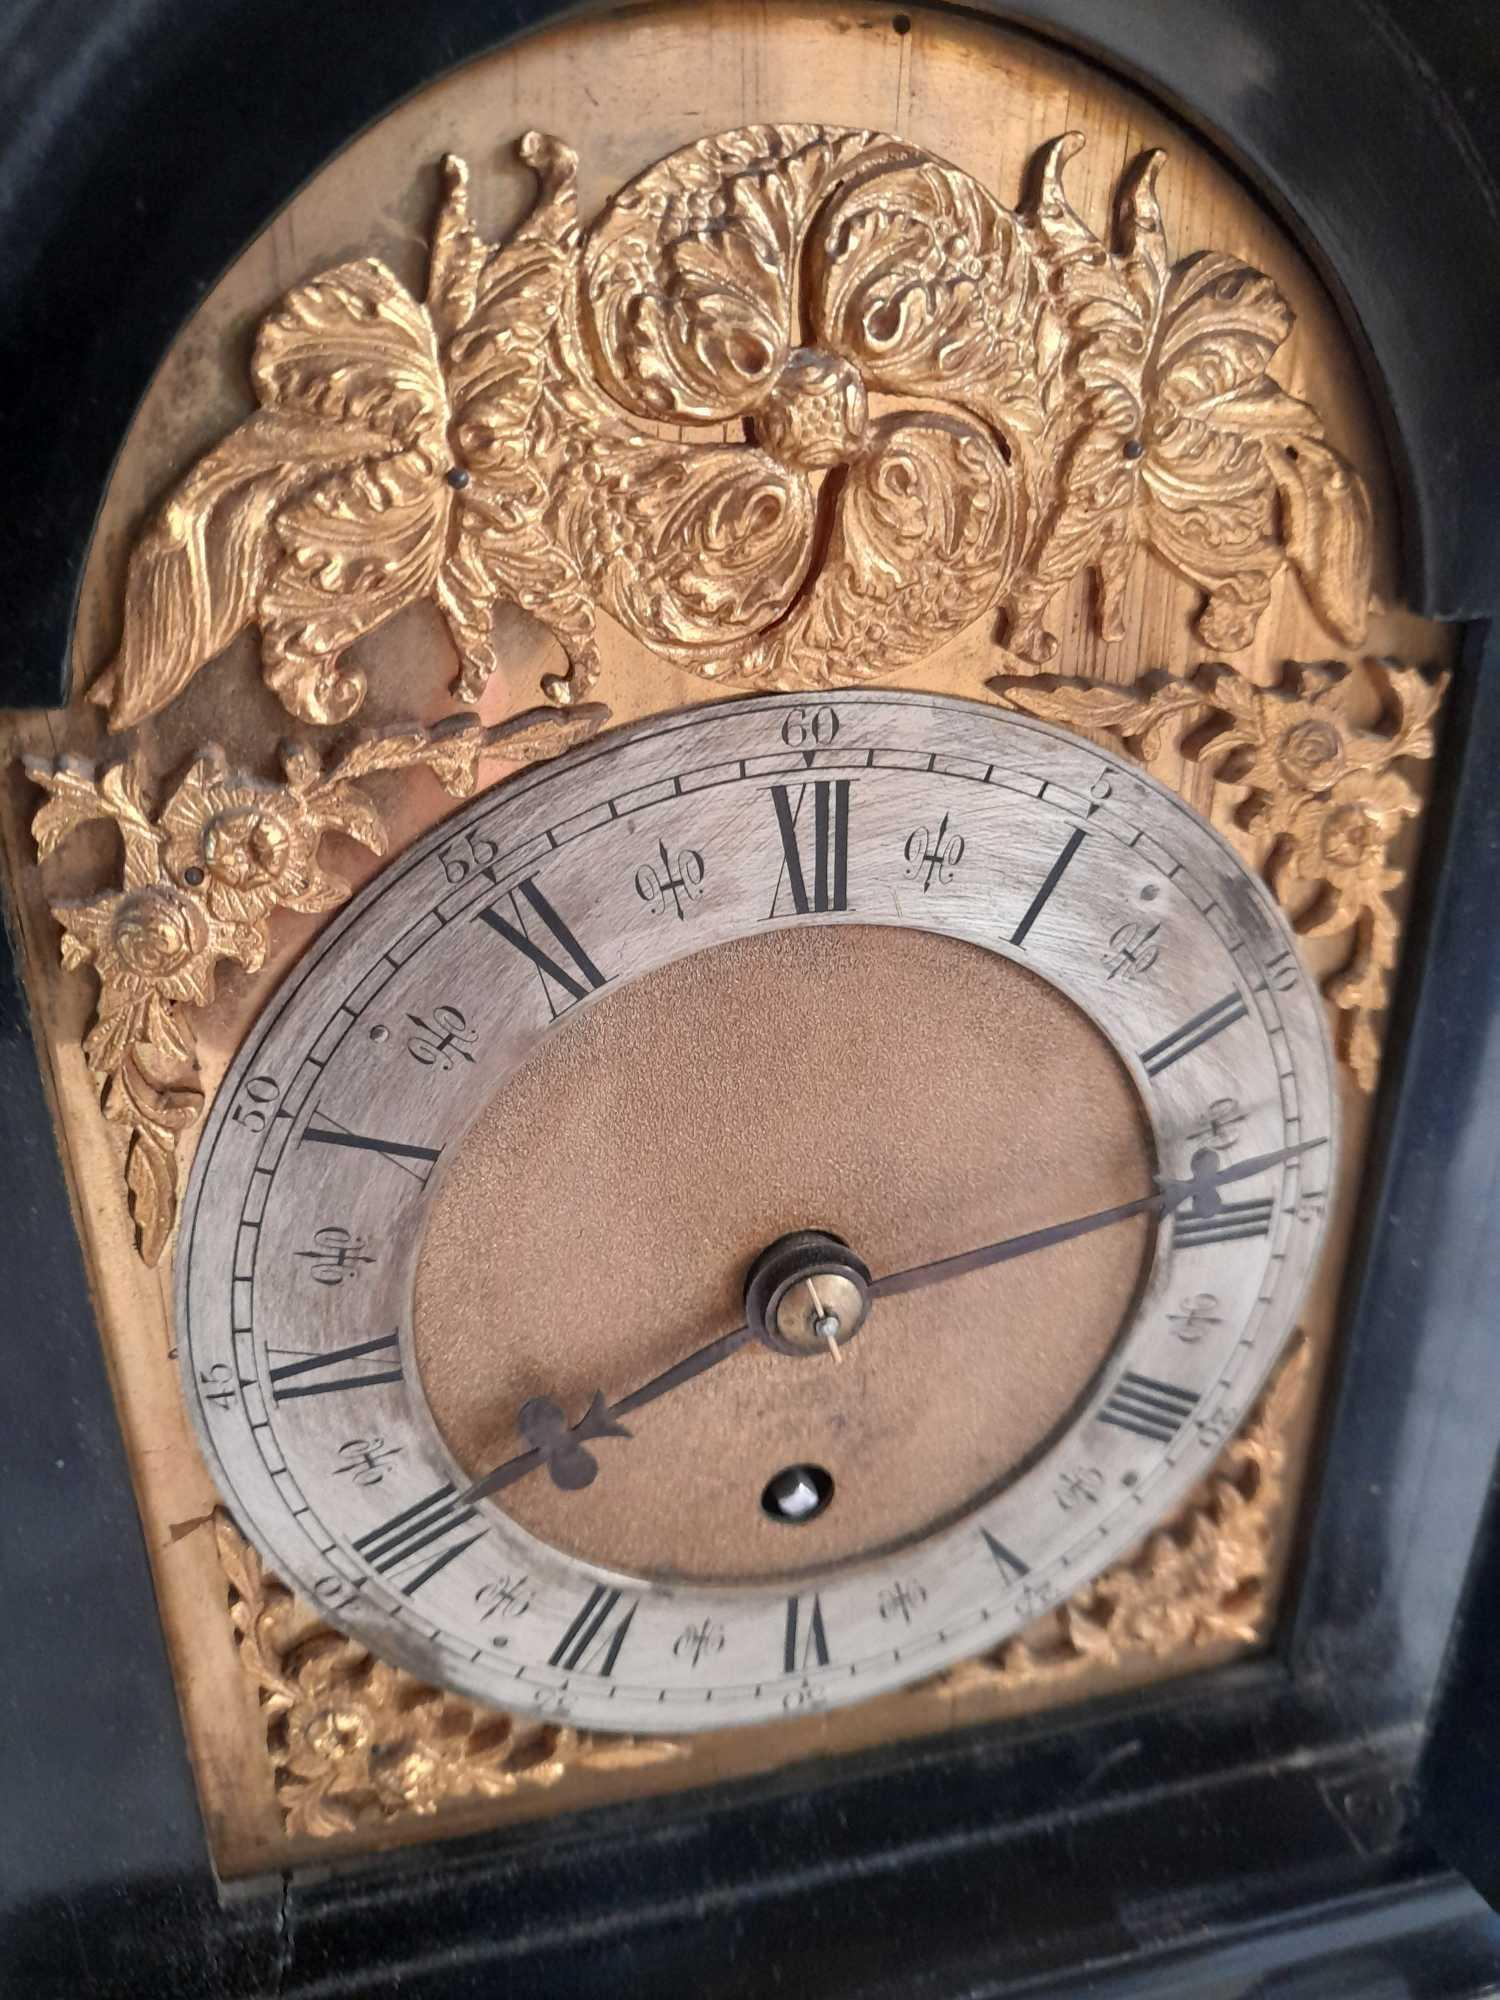 DENT LONDON SMALL CLOCK- ENGINE TURNED INTERNAL PLATES - Image 5 of 9